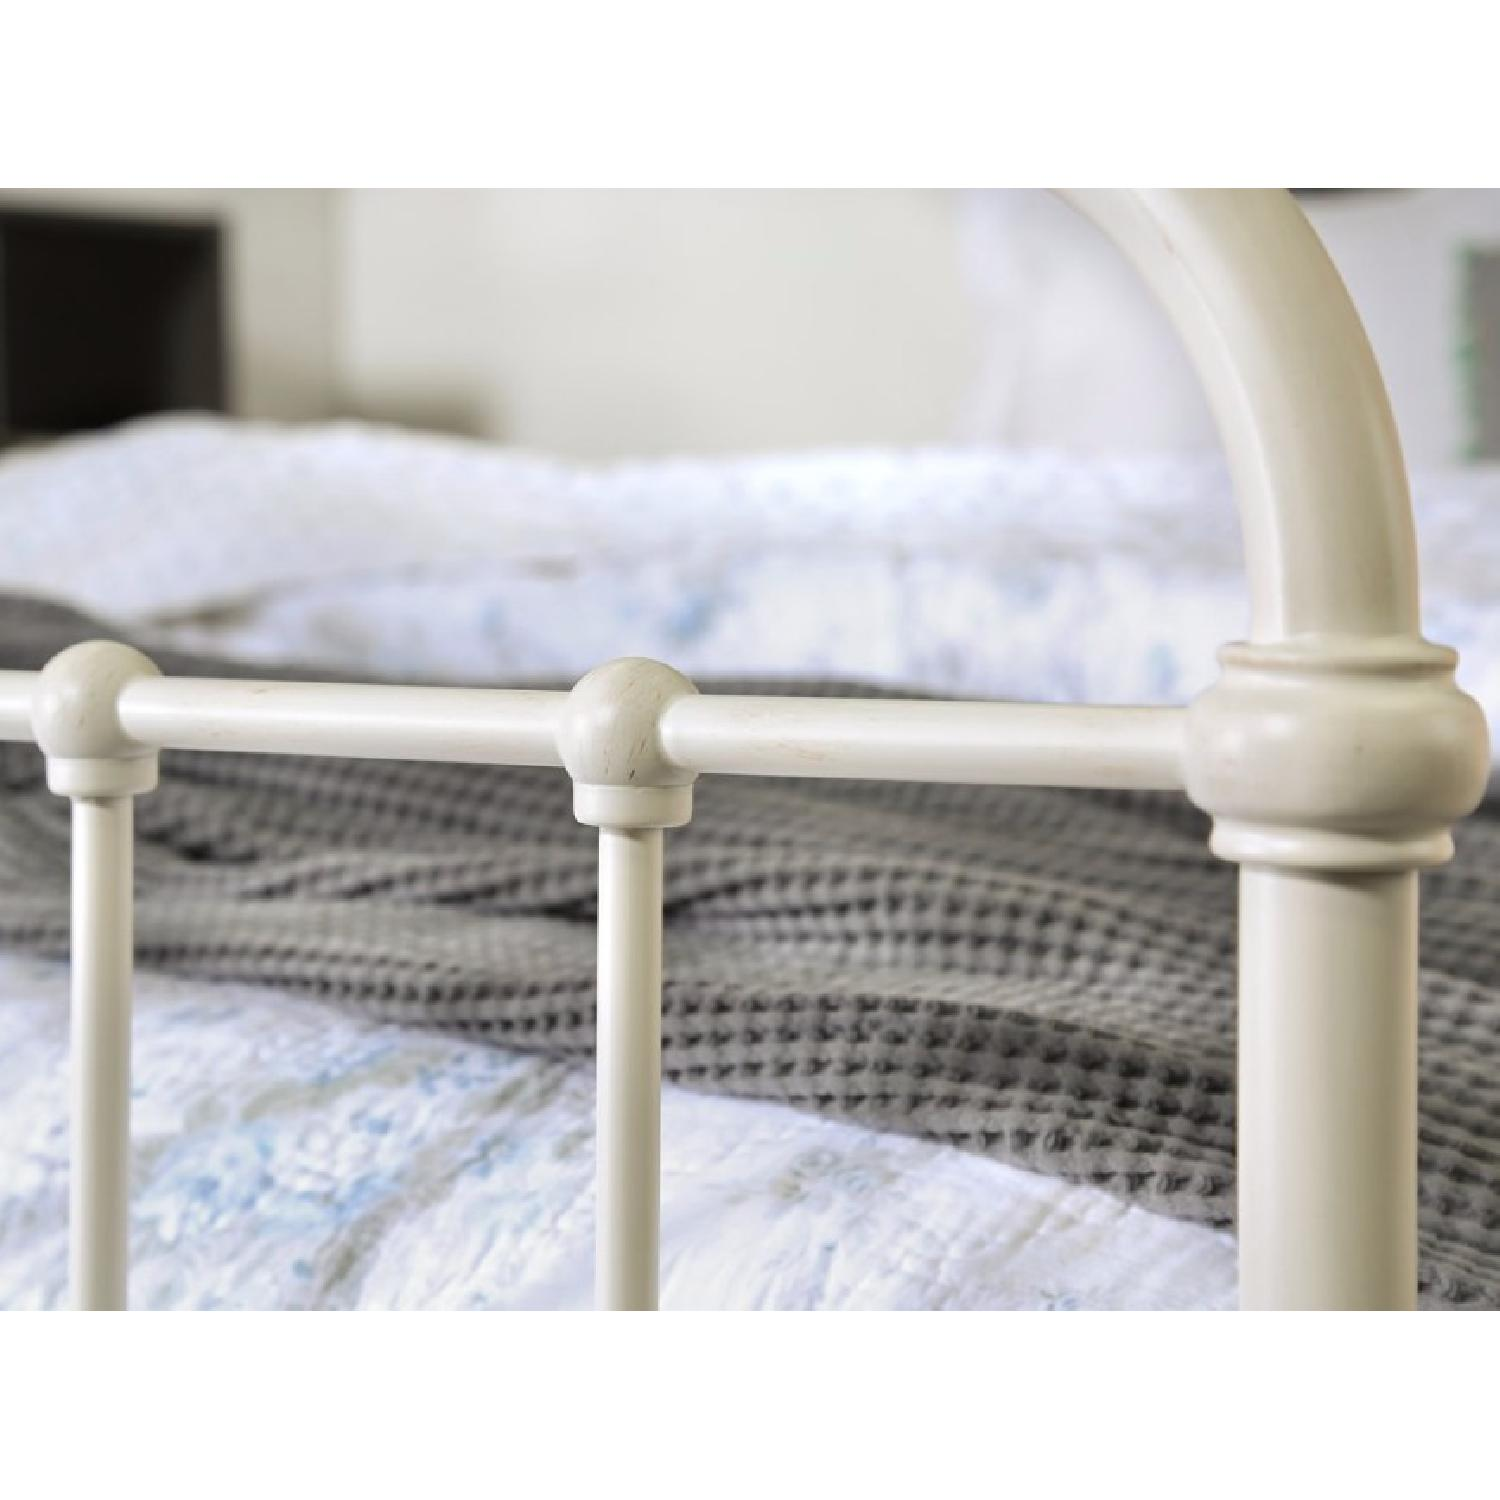 Shabby Chic Queen Metal Bed in Vintage White-3